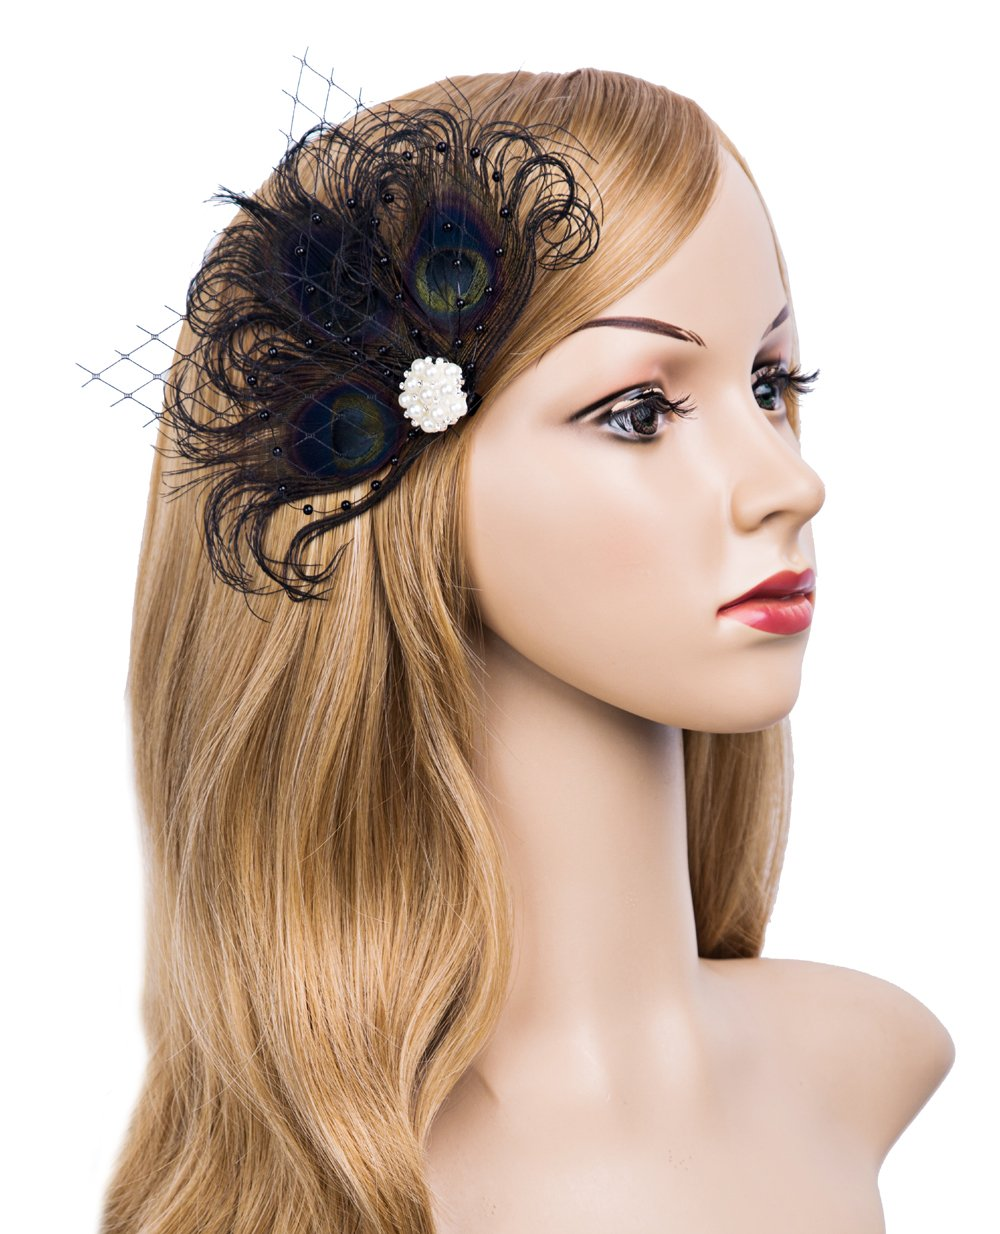 Cizoe 1920s Gatsby Acessories Peacock Costume Hair Clip With Feather Pearl 1920 Flapper Headpiece (Black)